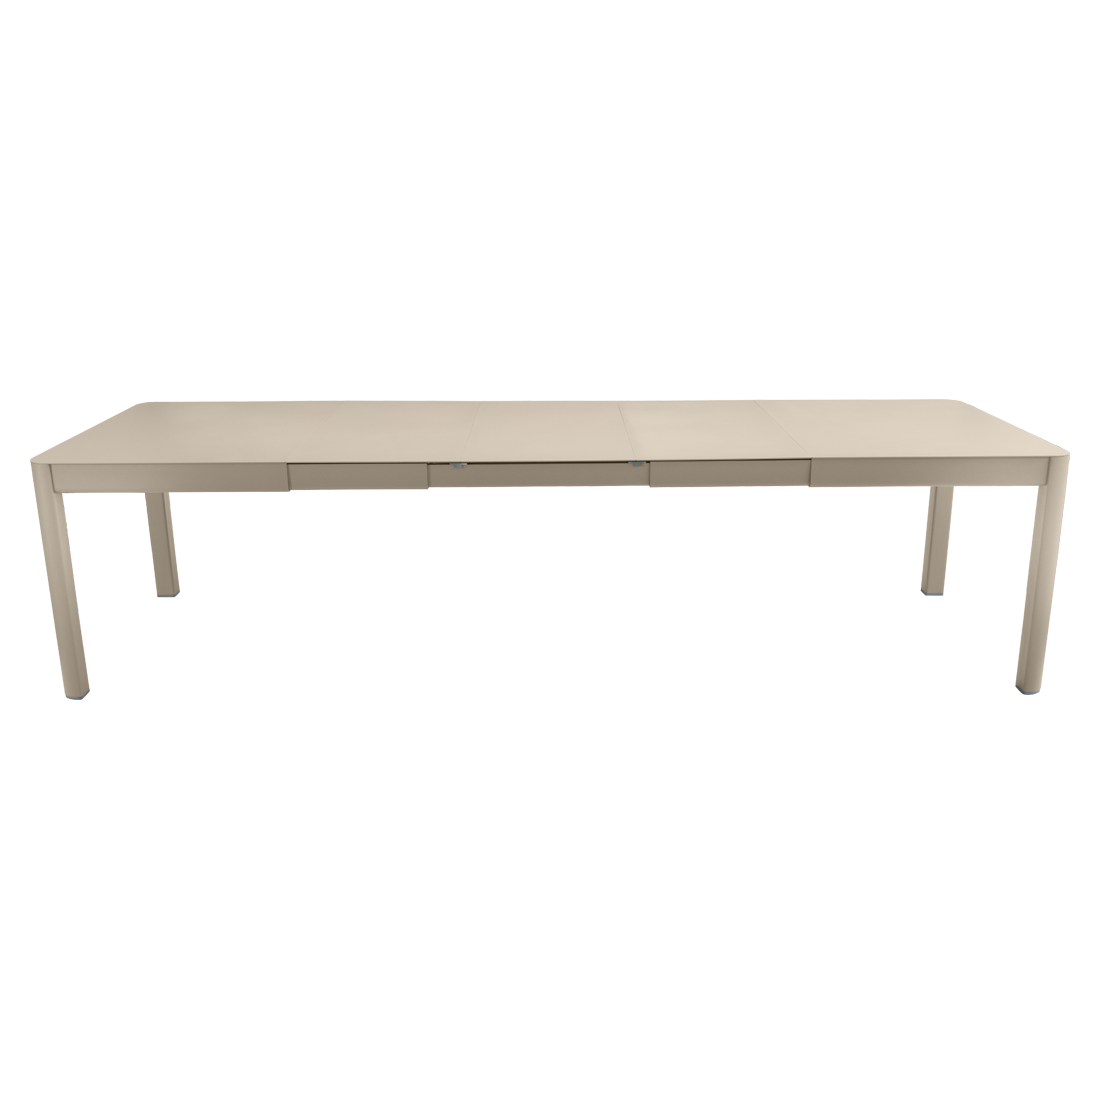 table de jardin beige, table metal allonge, table metal a rallonge, table metal rectangulaire, table fermob allonge